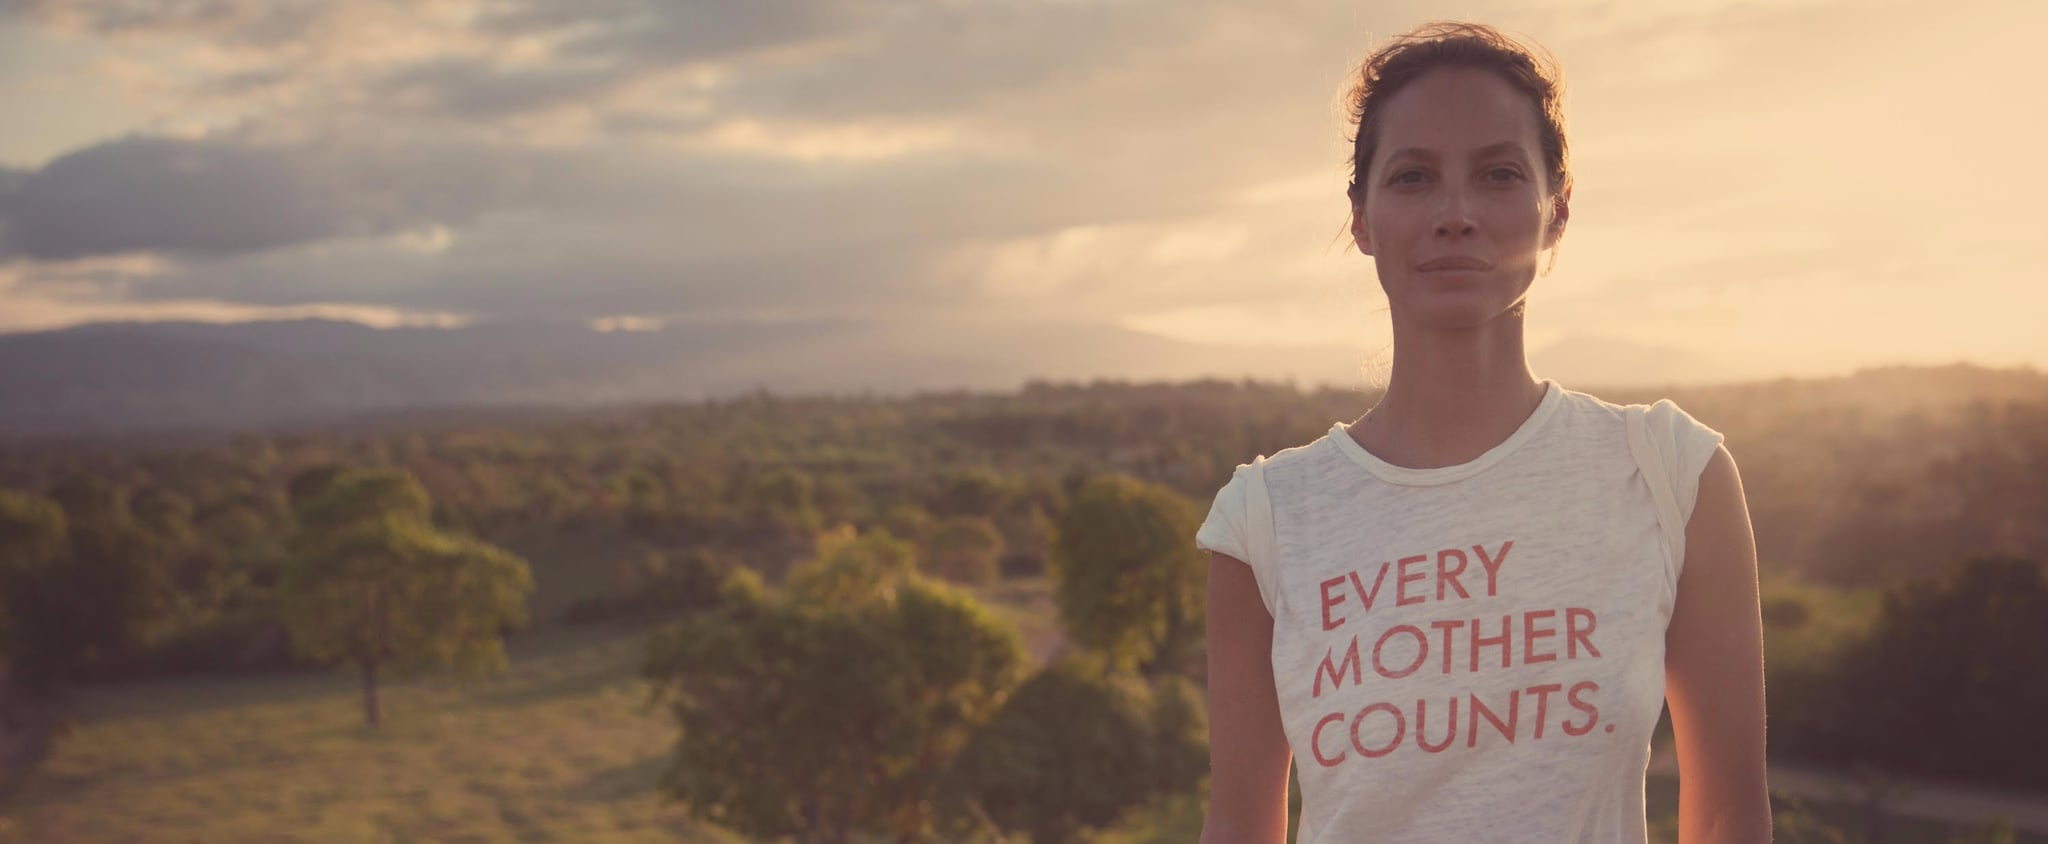 Christy Turlington Burns Founds Every Mother Counts